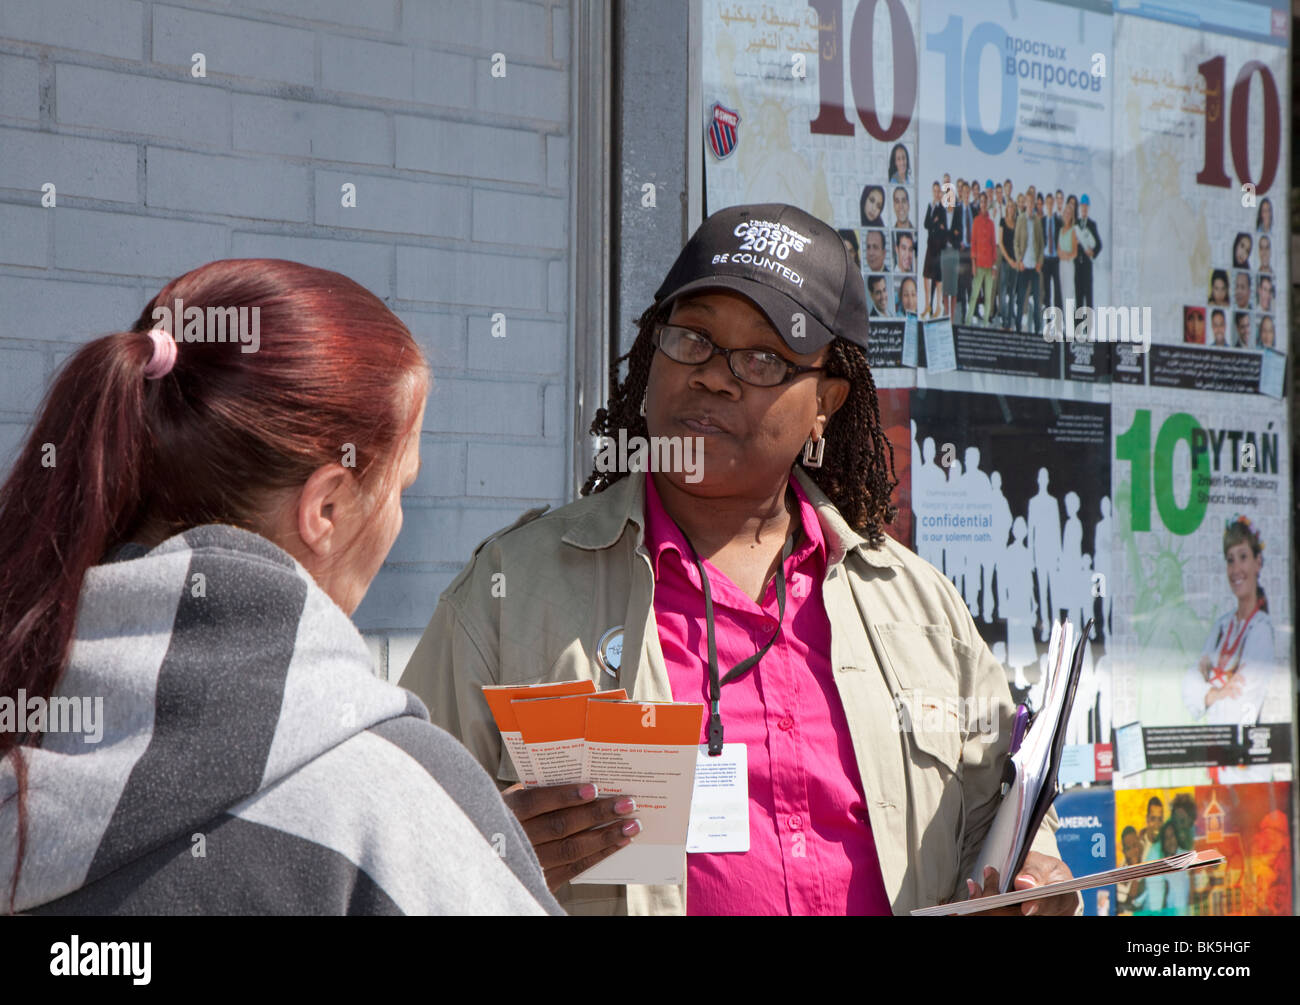 Census Worker - Stock Image